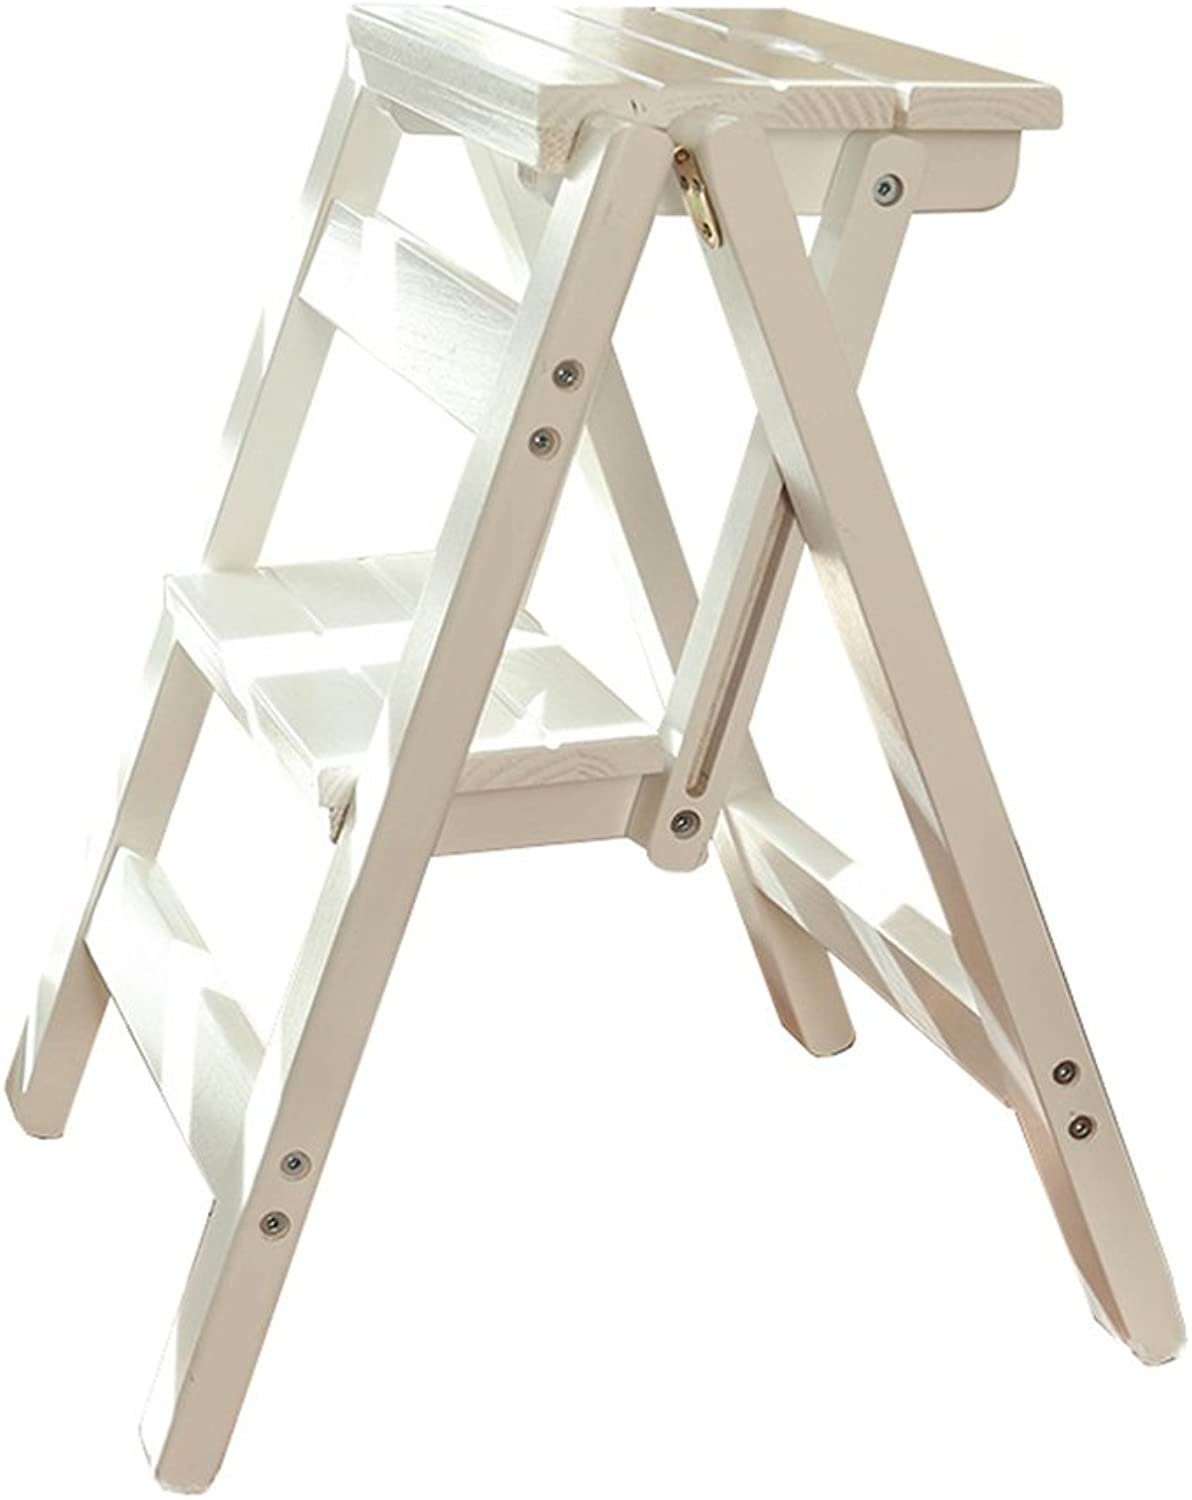 Folding Steps Innovative Creative Folding Fold Up Library Steps Multifunctional Wooden Ladder Stool Kitchen Office Use Ladder Chair with 2 Steps - White 150kg Capacity